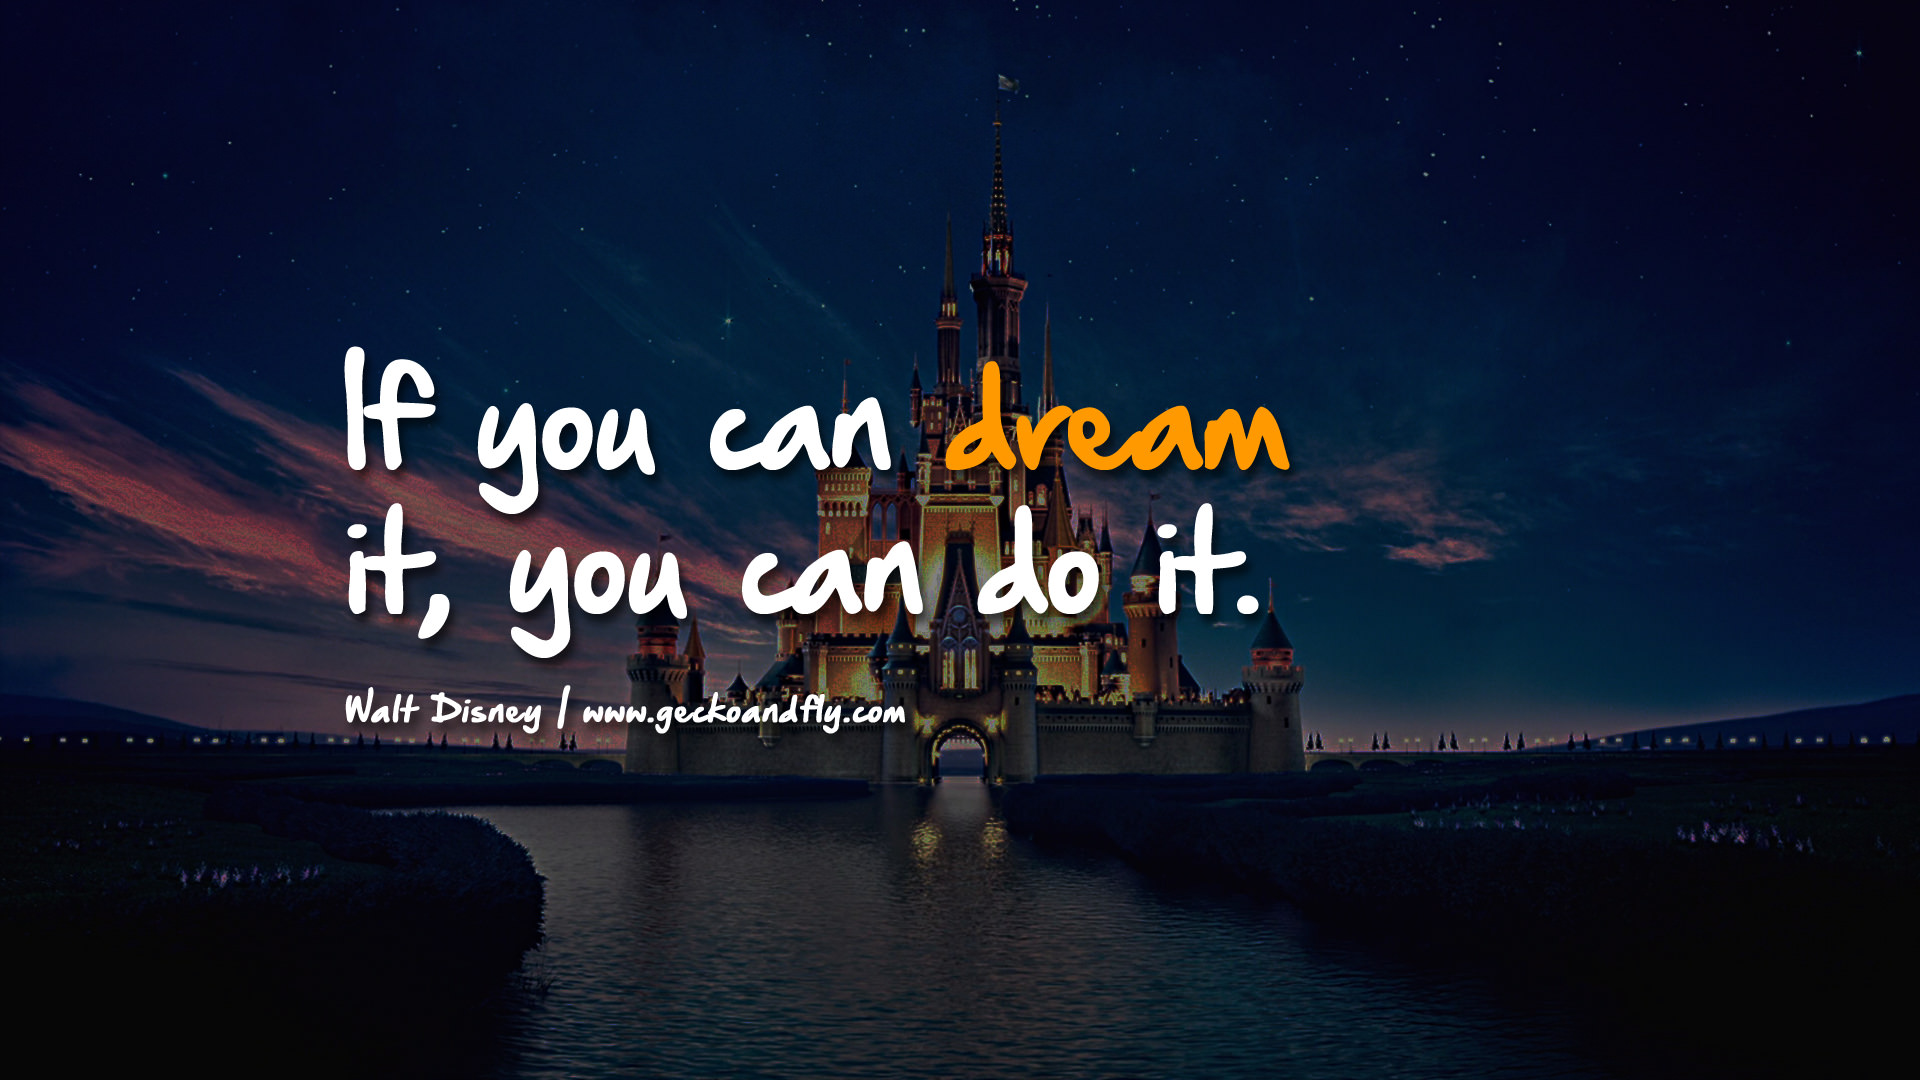 disney computer backgrounds with quotes quotesgram